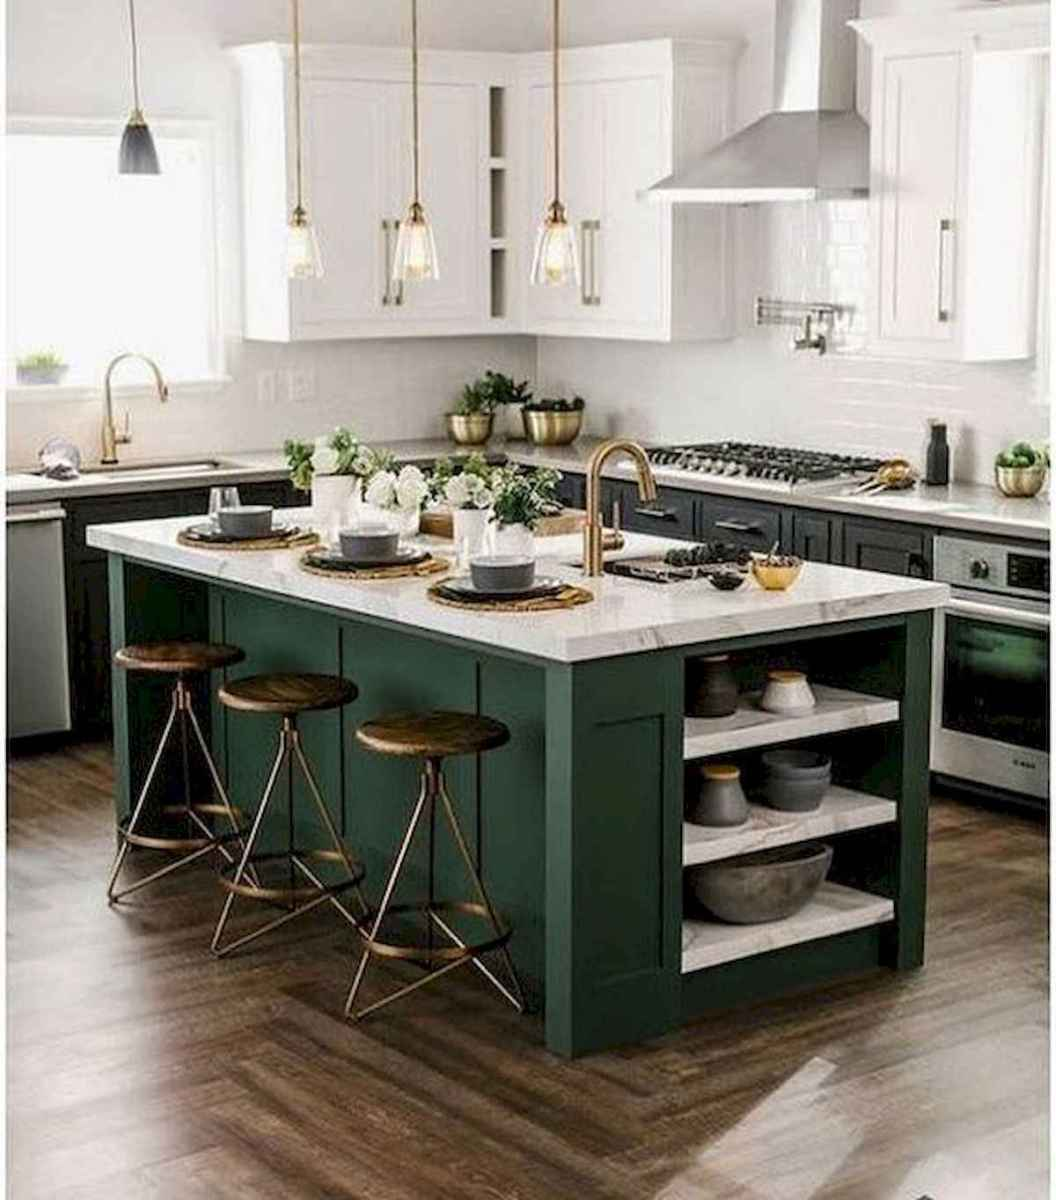 80+ Fantastic Colorful Kitchen Decor Ideas And Remodel for Summer Project (49)